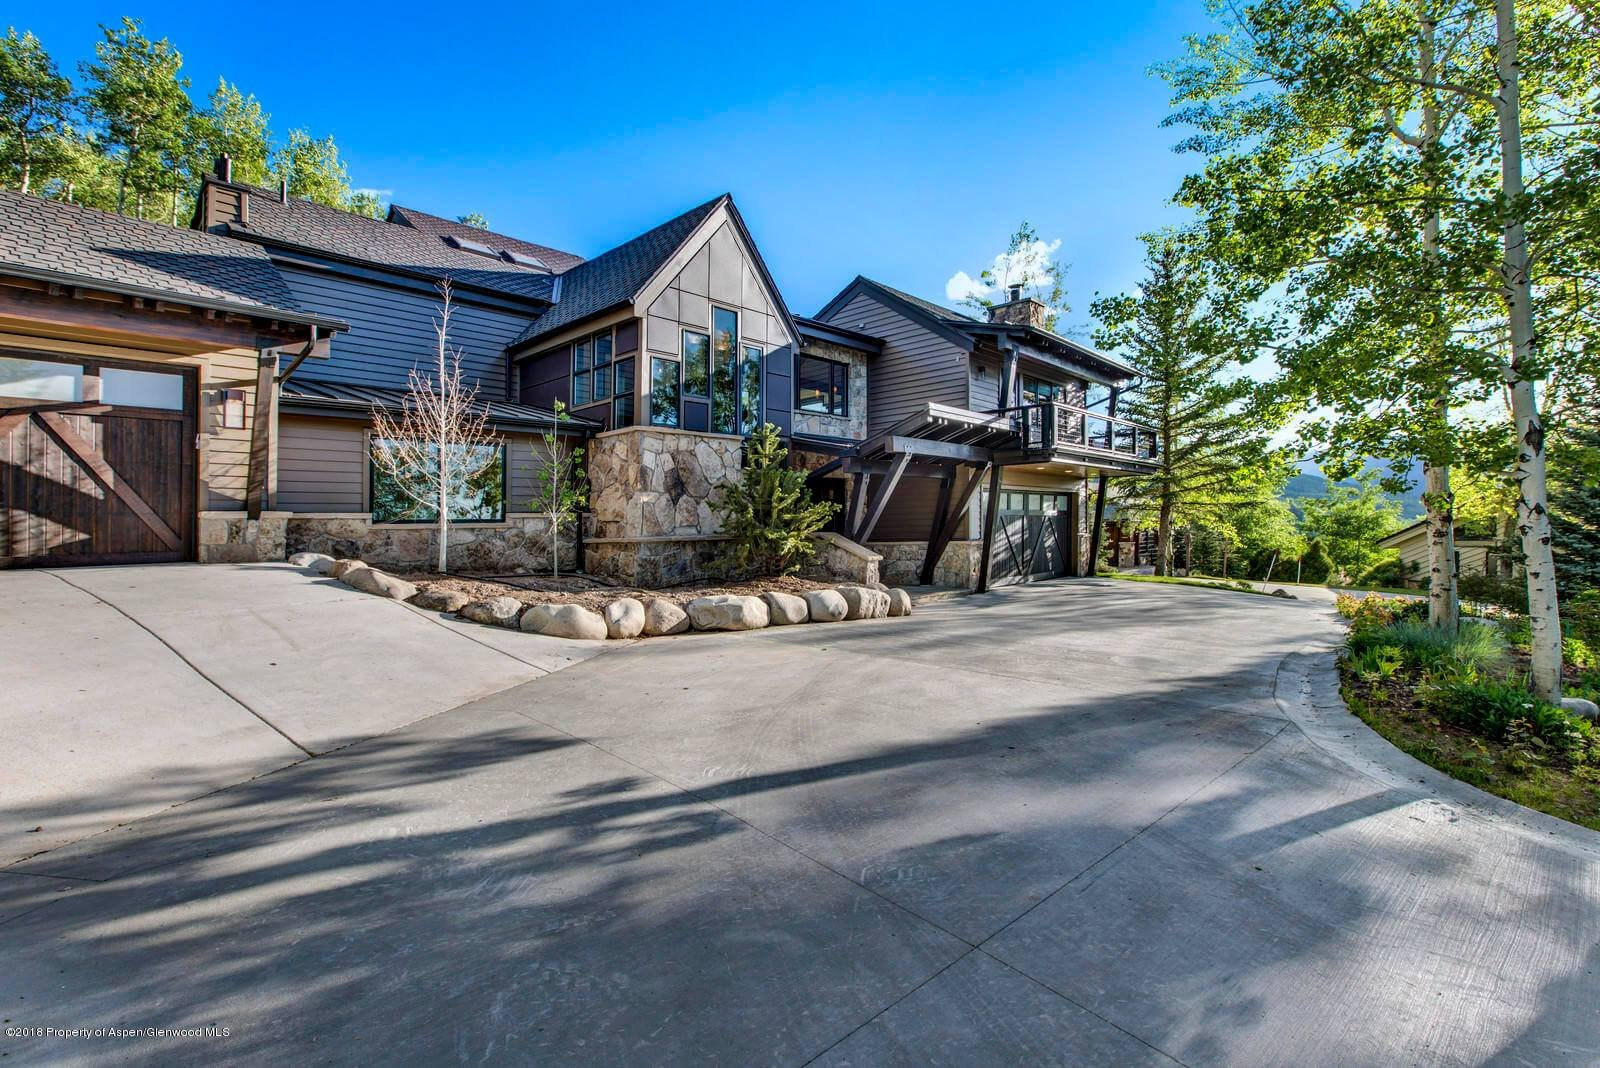 Snowmass Village 2018 Remodeled Ridge Run Home Closes at $5.7M/$1,357 Sq Ft Furnished Image